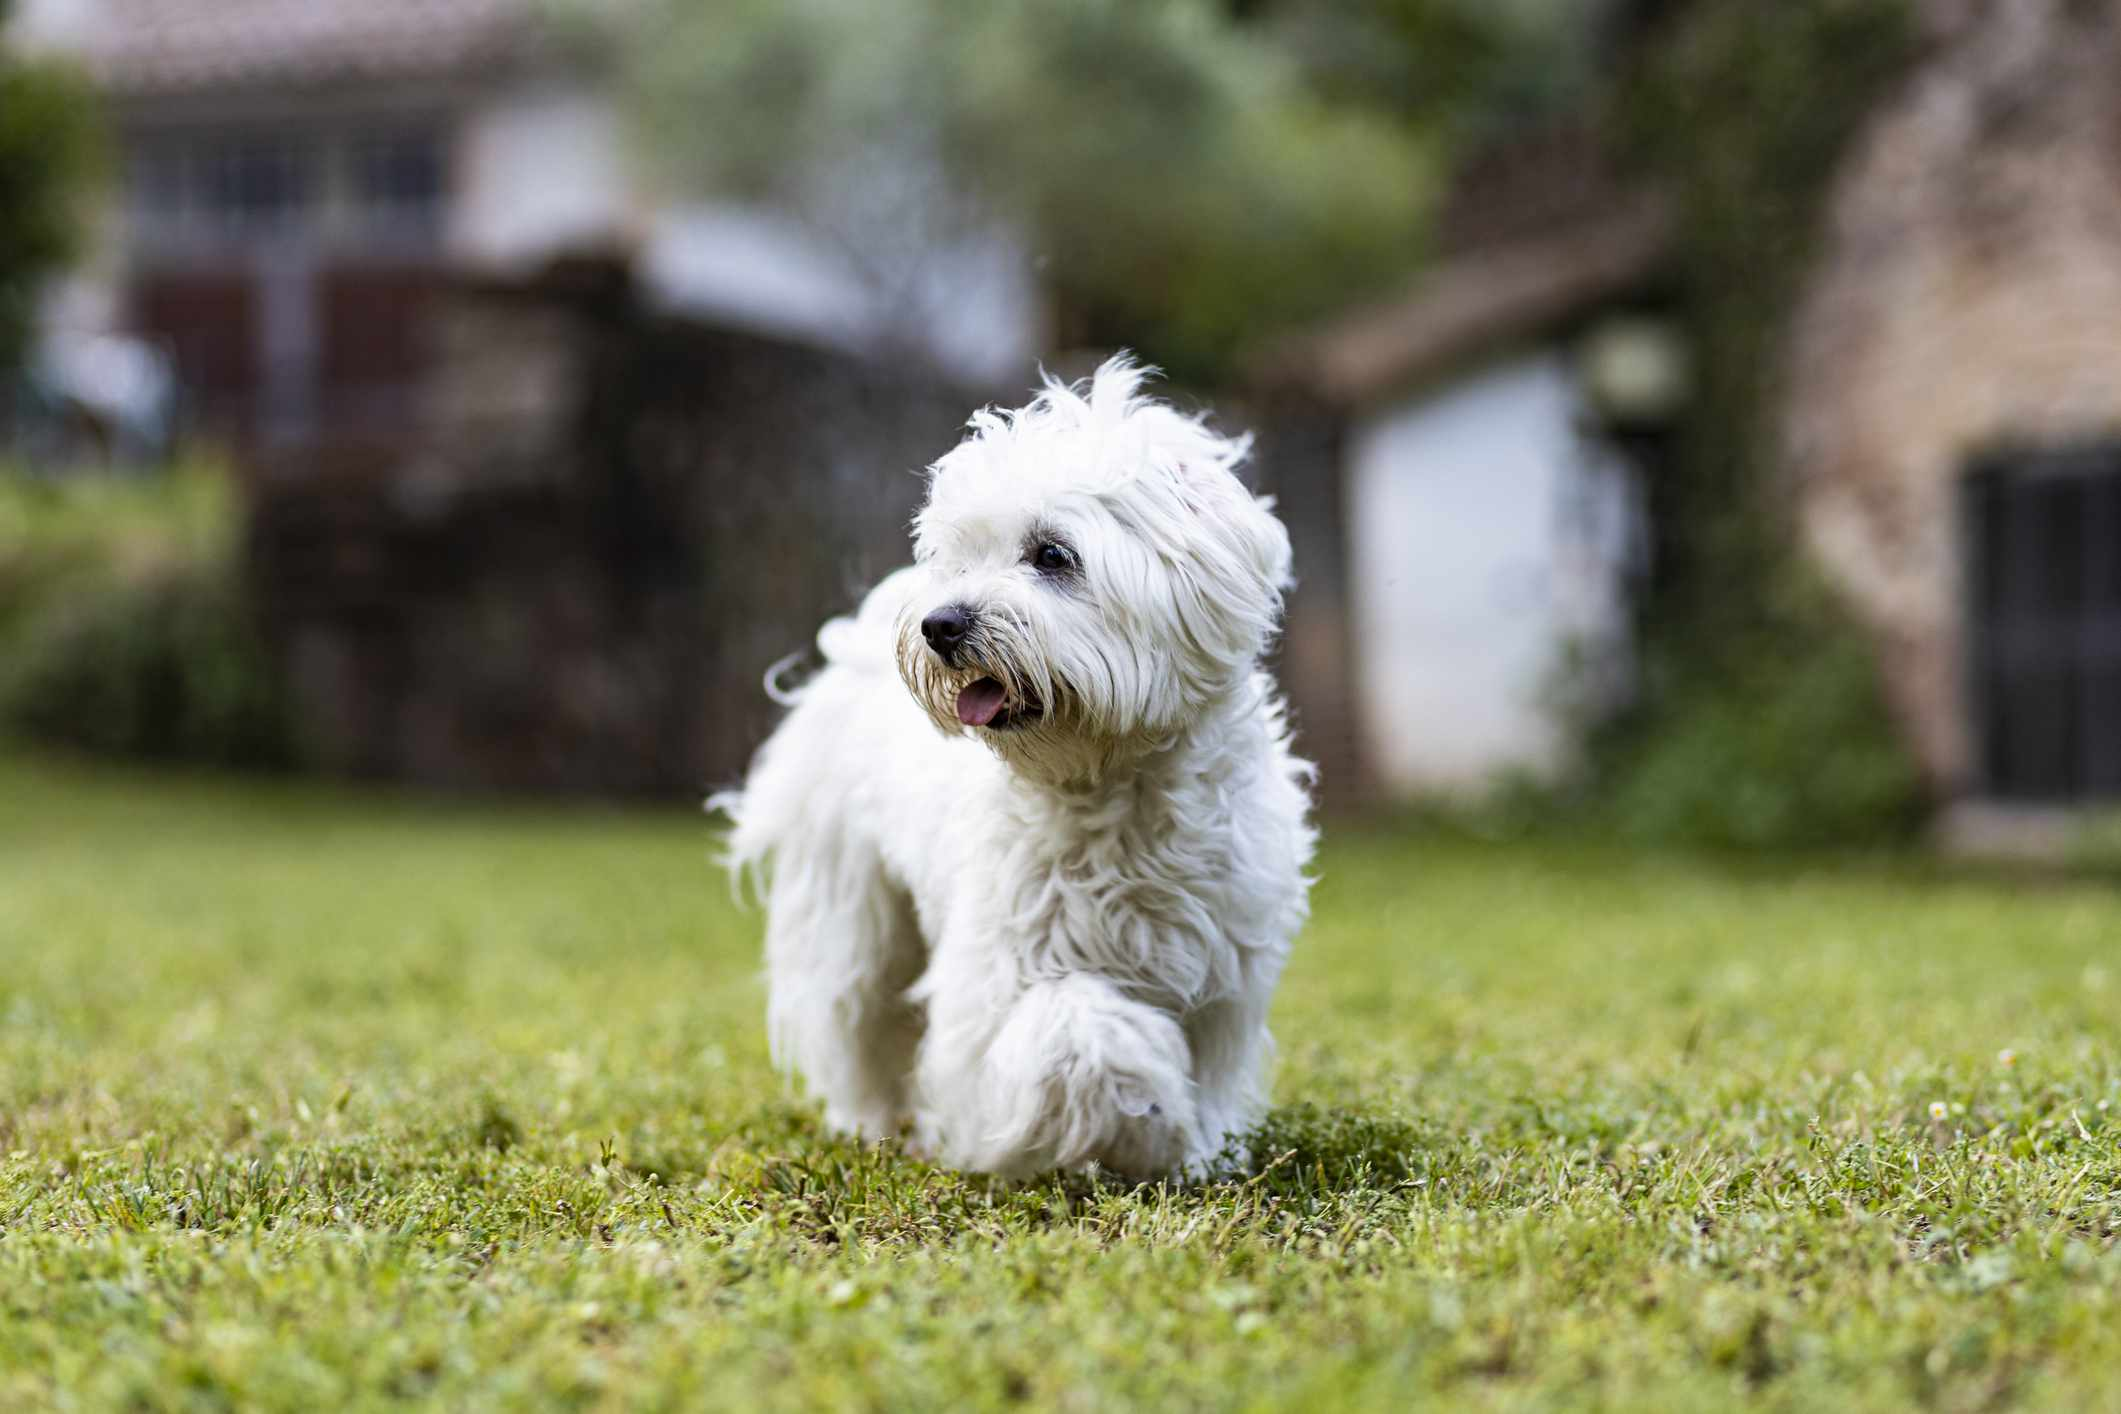 A small white dog standing outside and looking off.